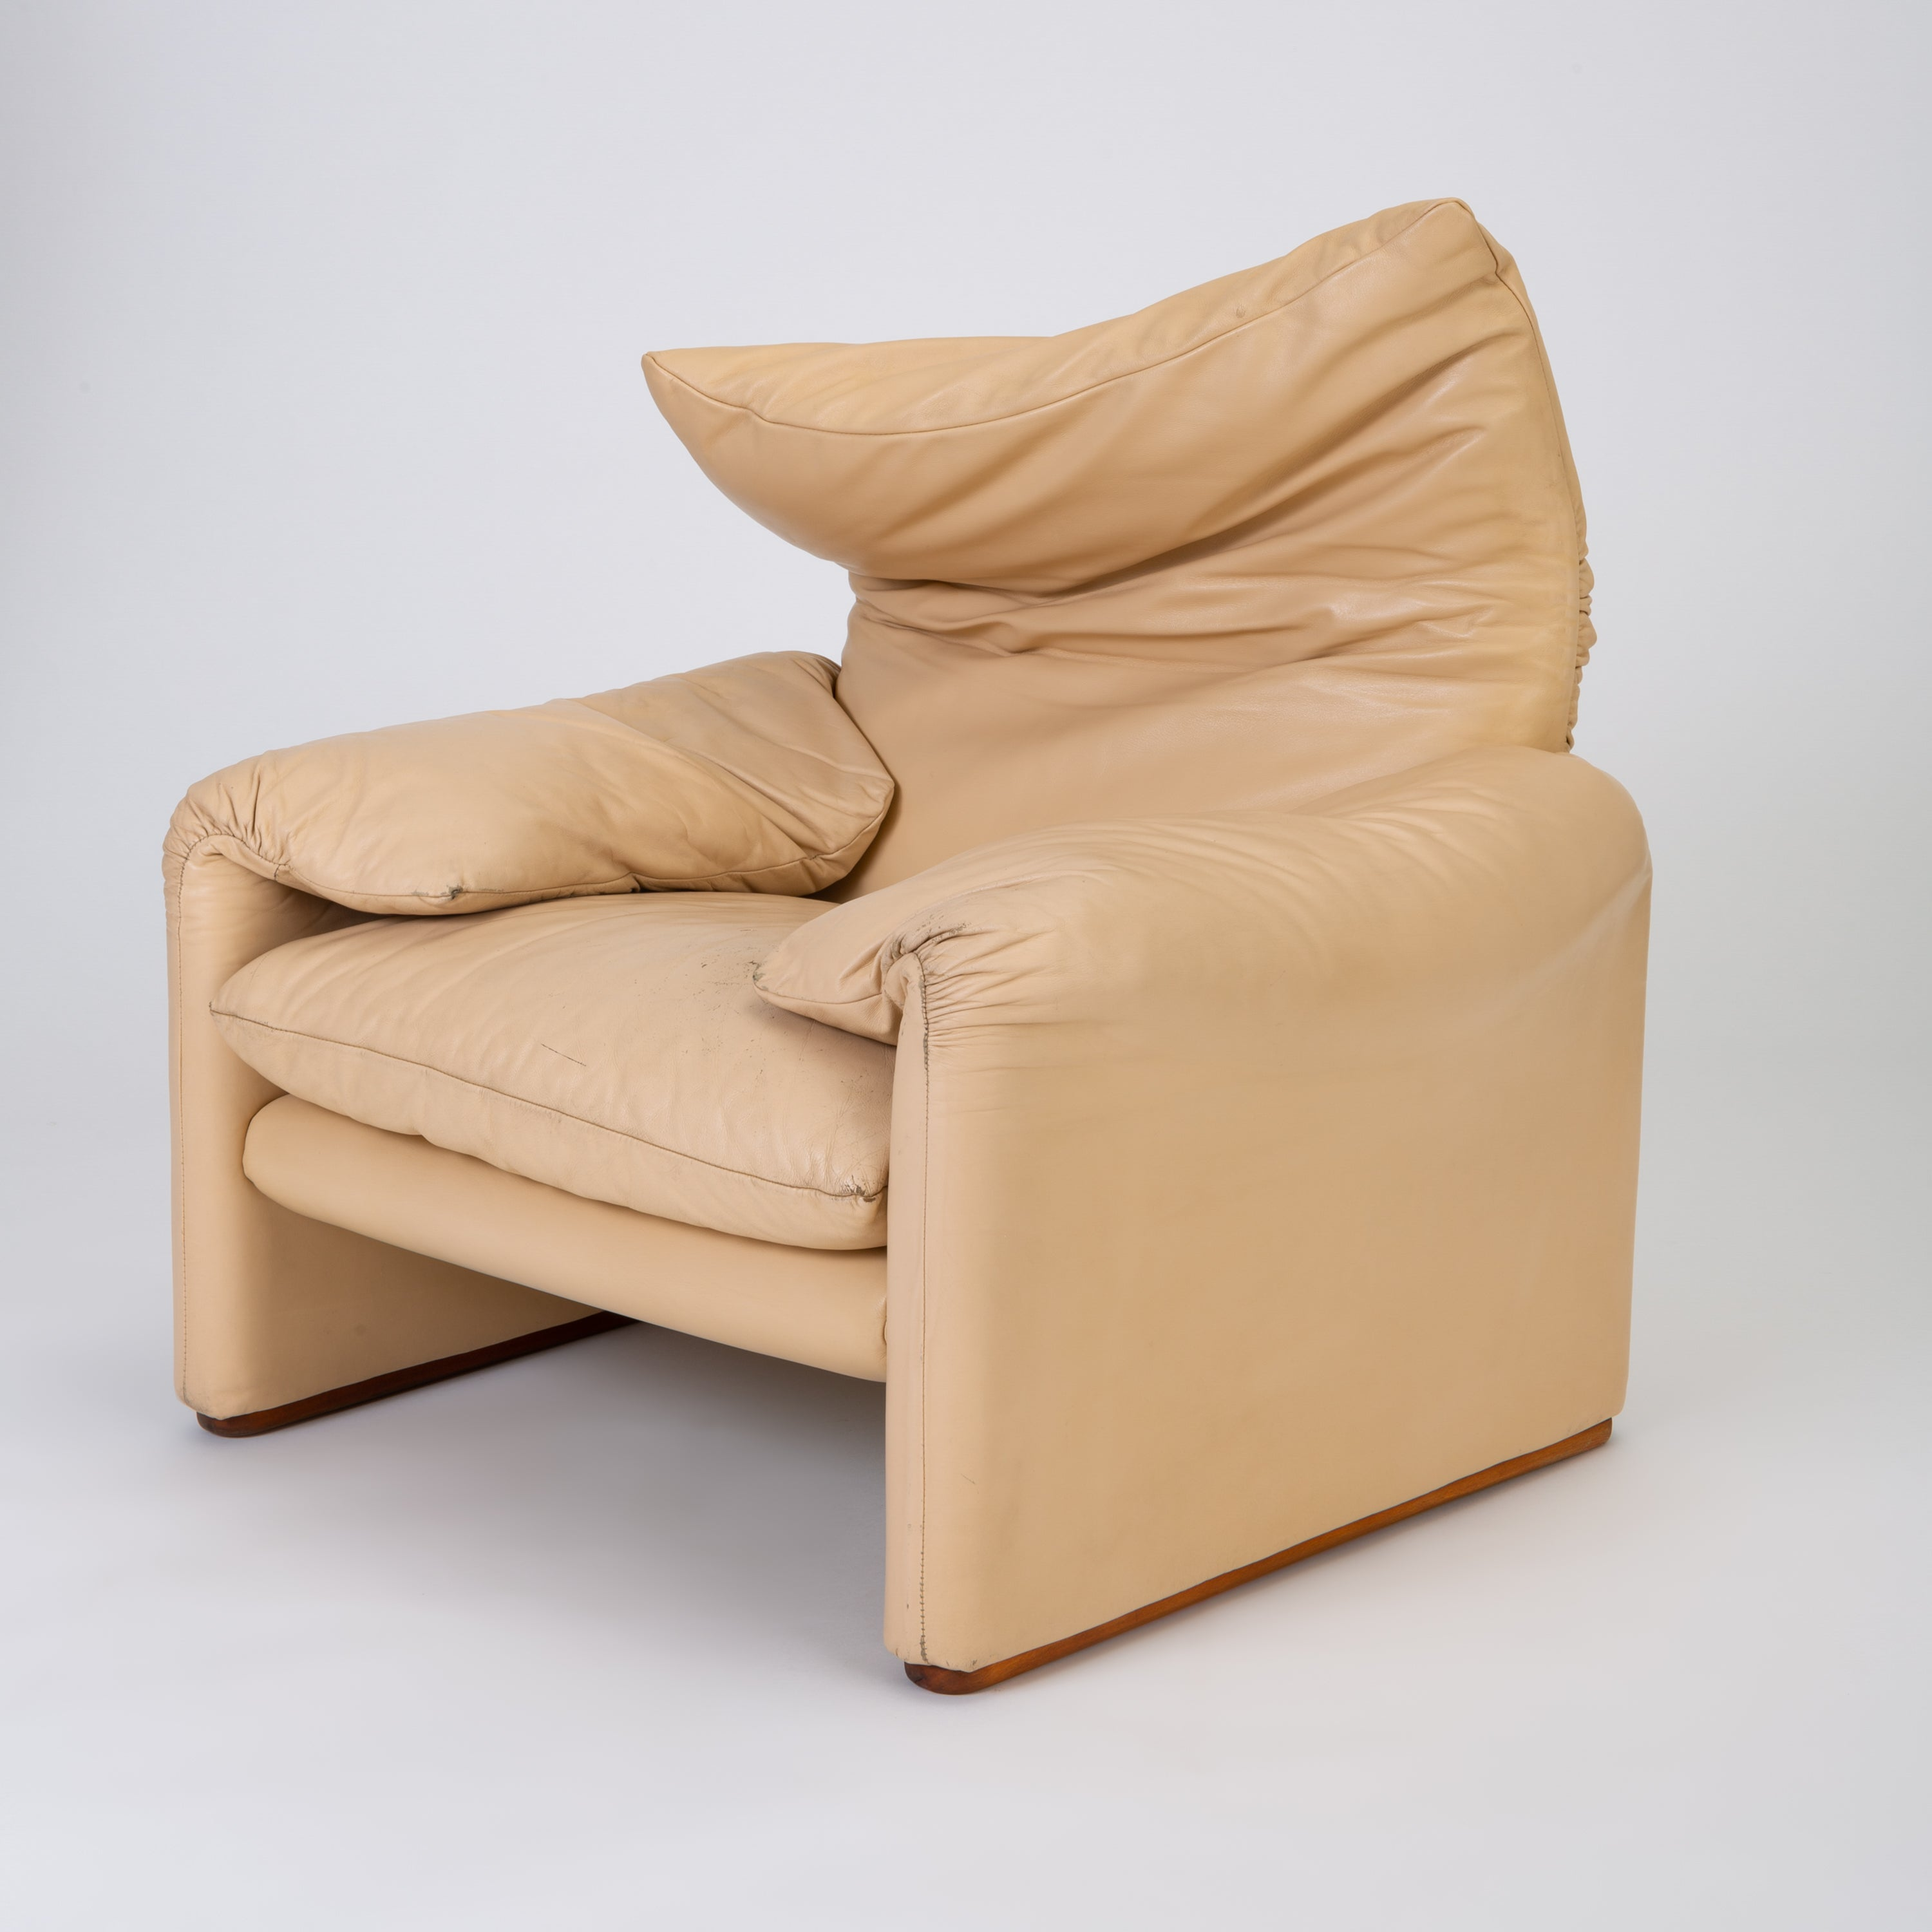 Leather U201cMaralungau201d Chair By Vico Magistretti For Cassina